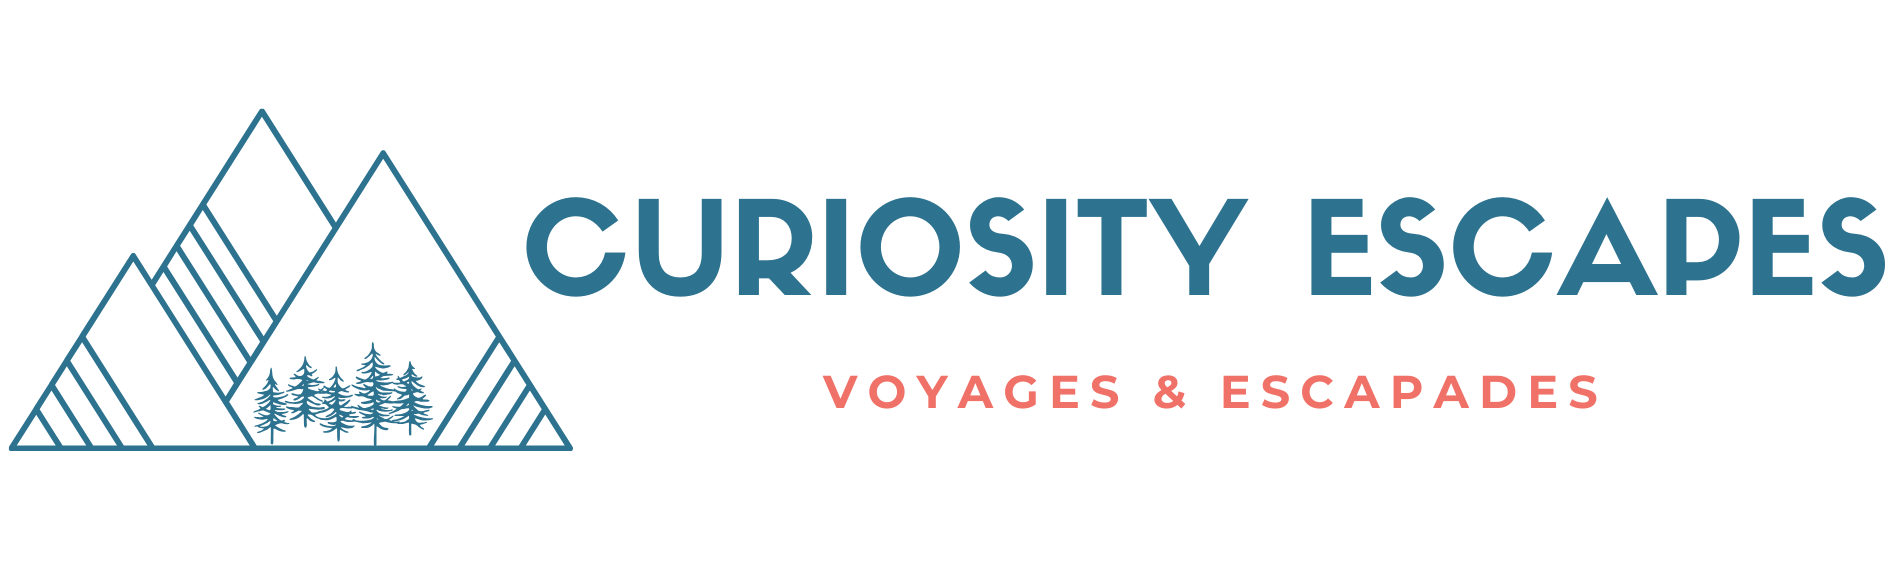 Curiosity Escapes